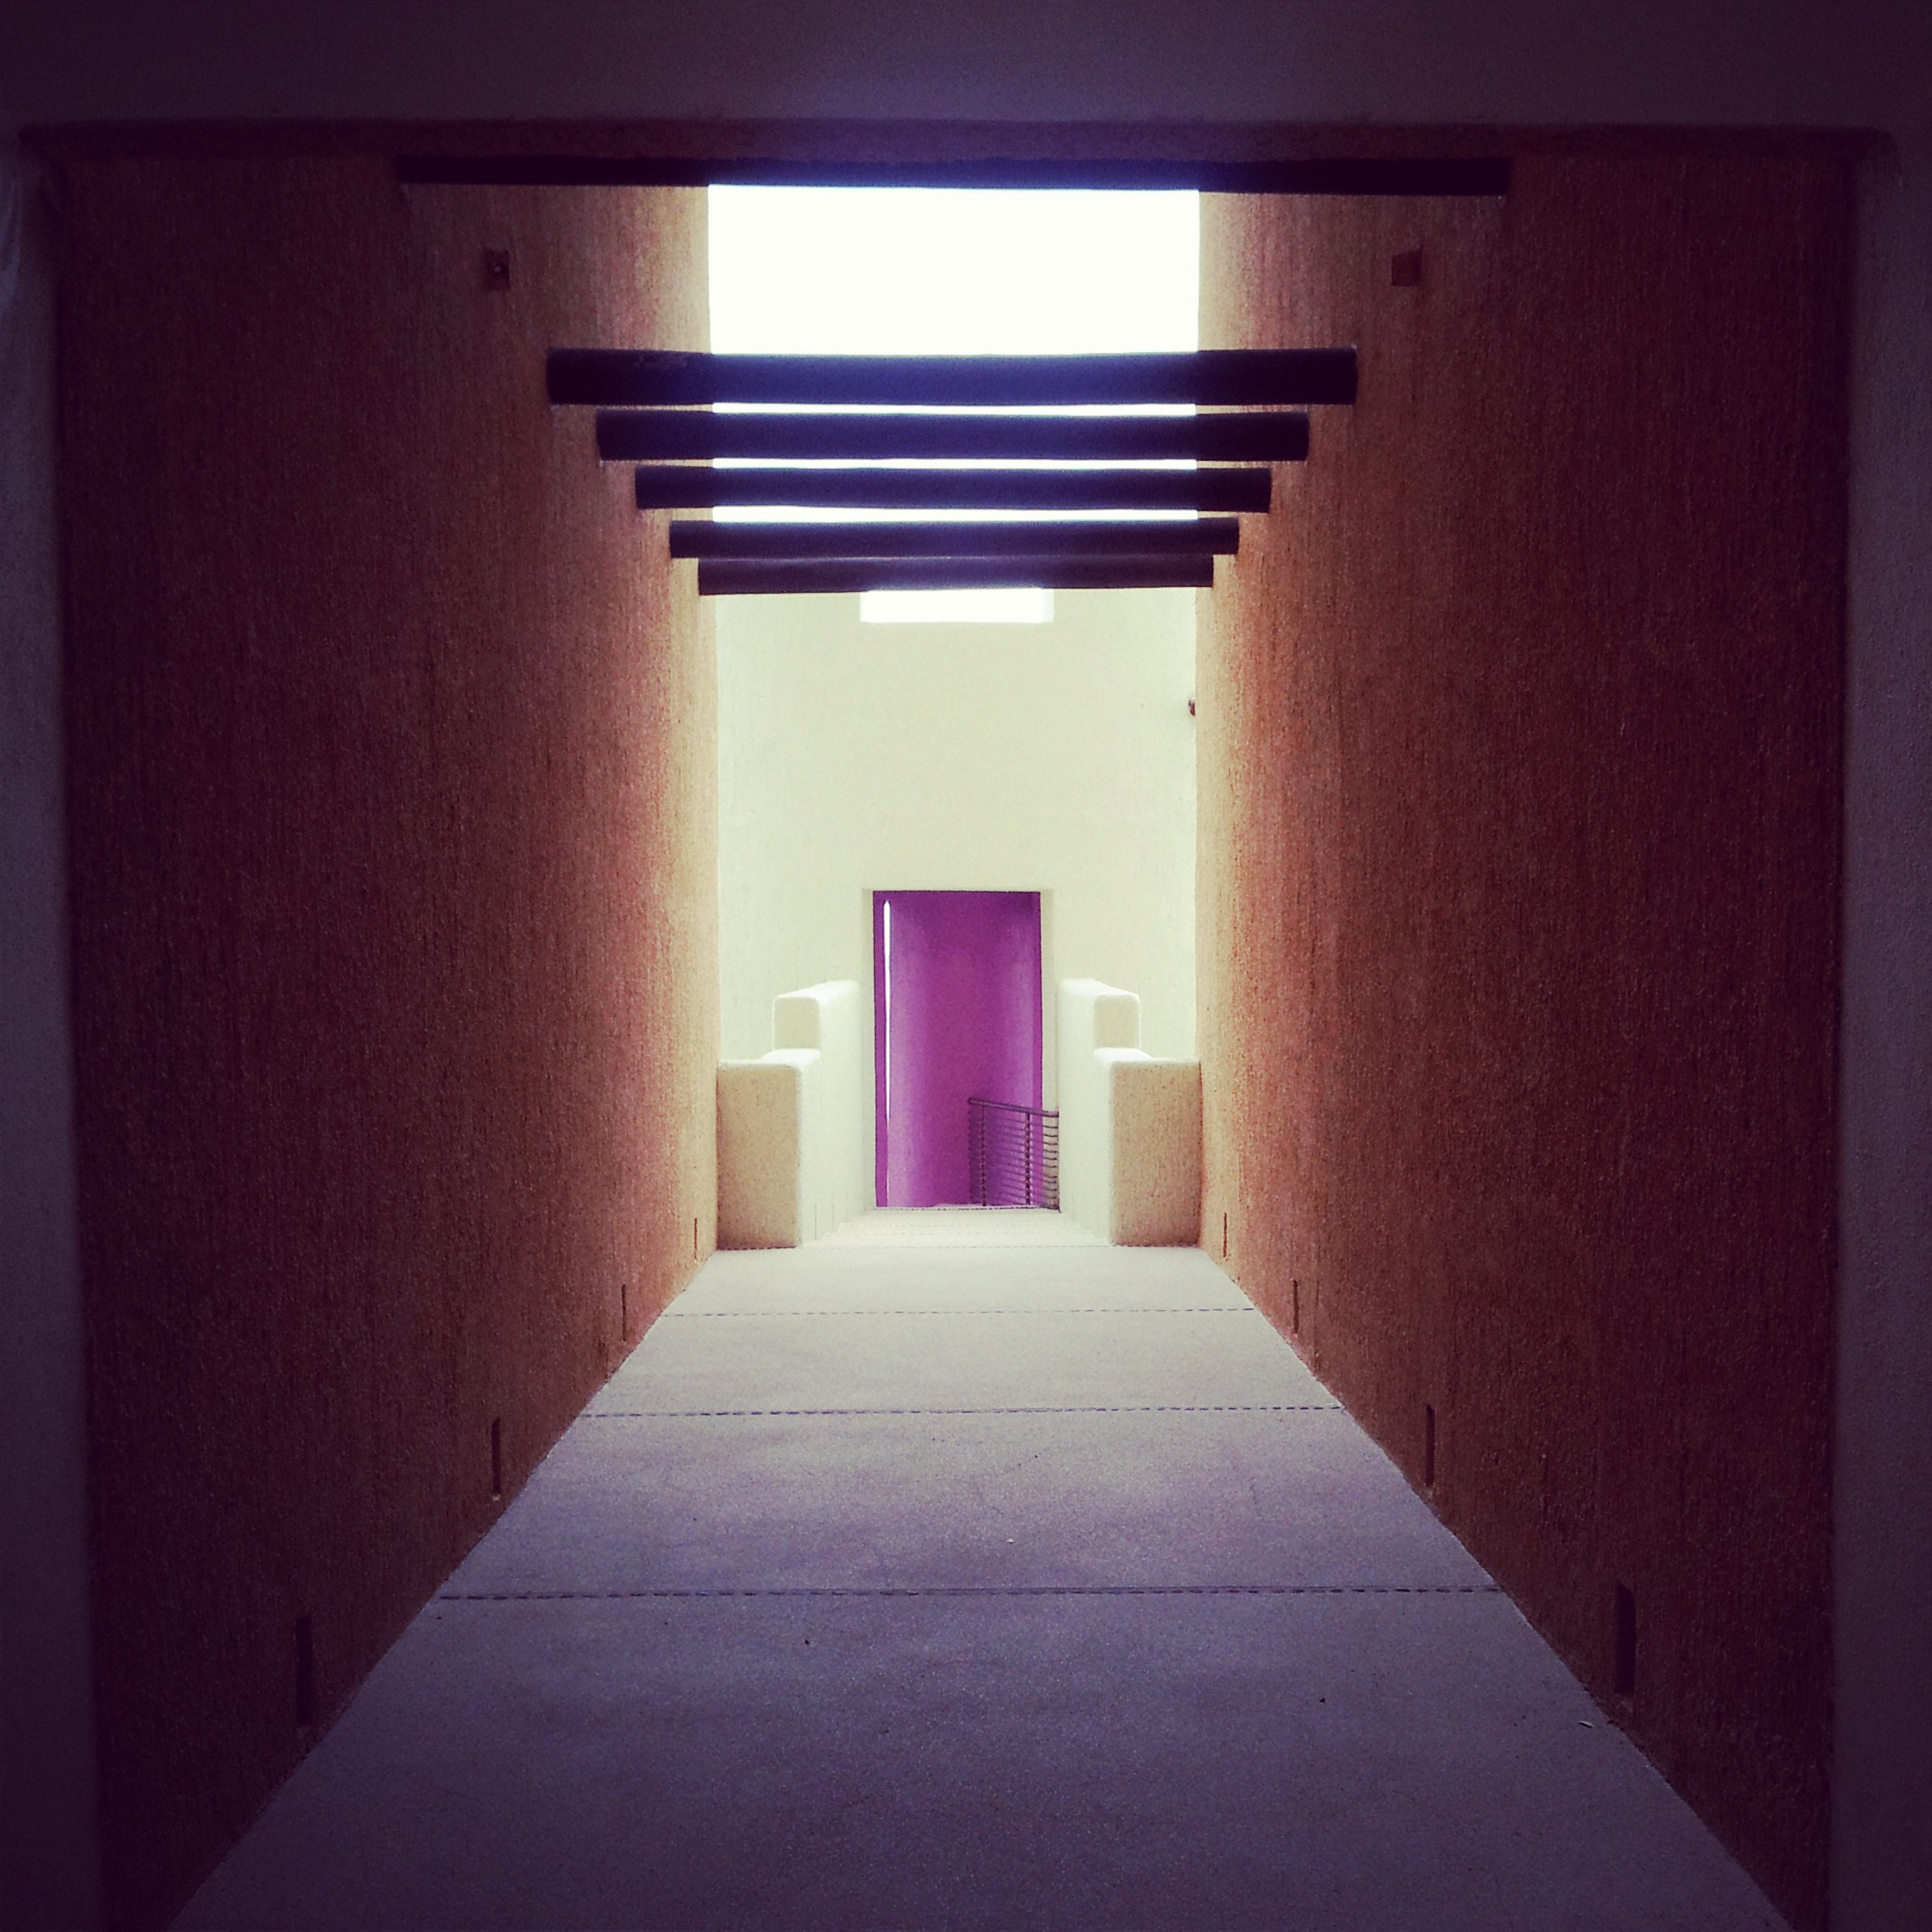 Hallway to the magenta stairwell.